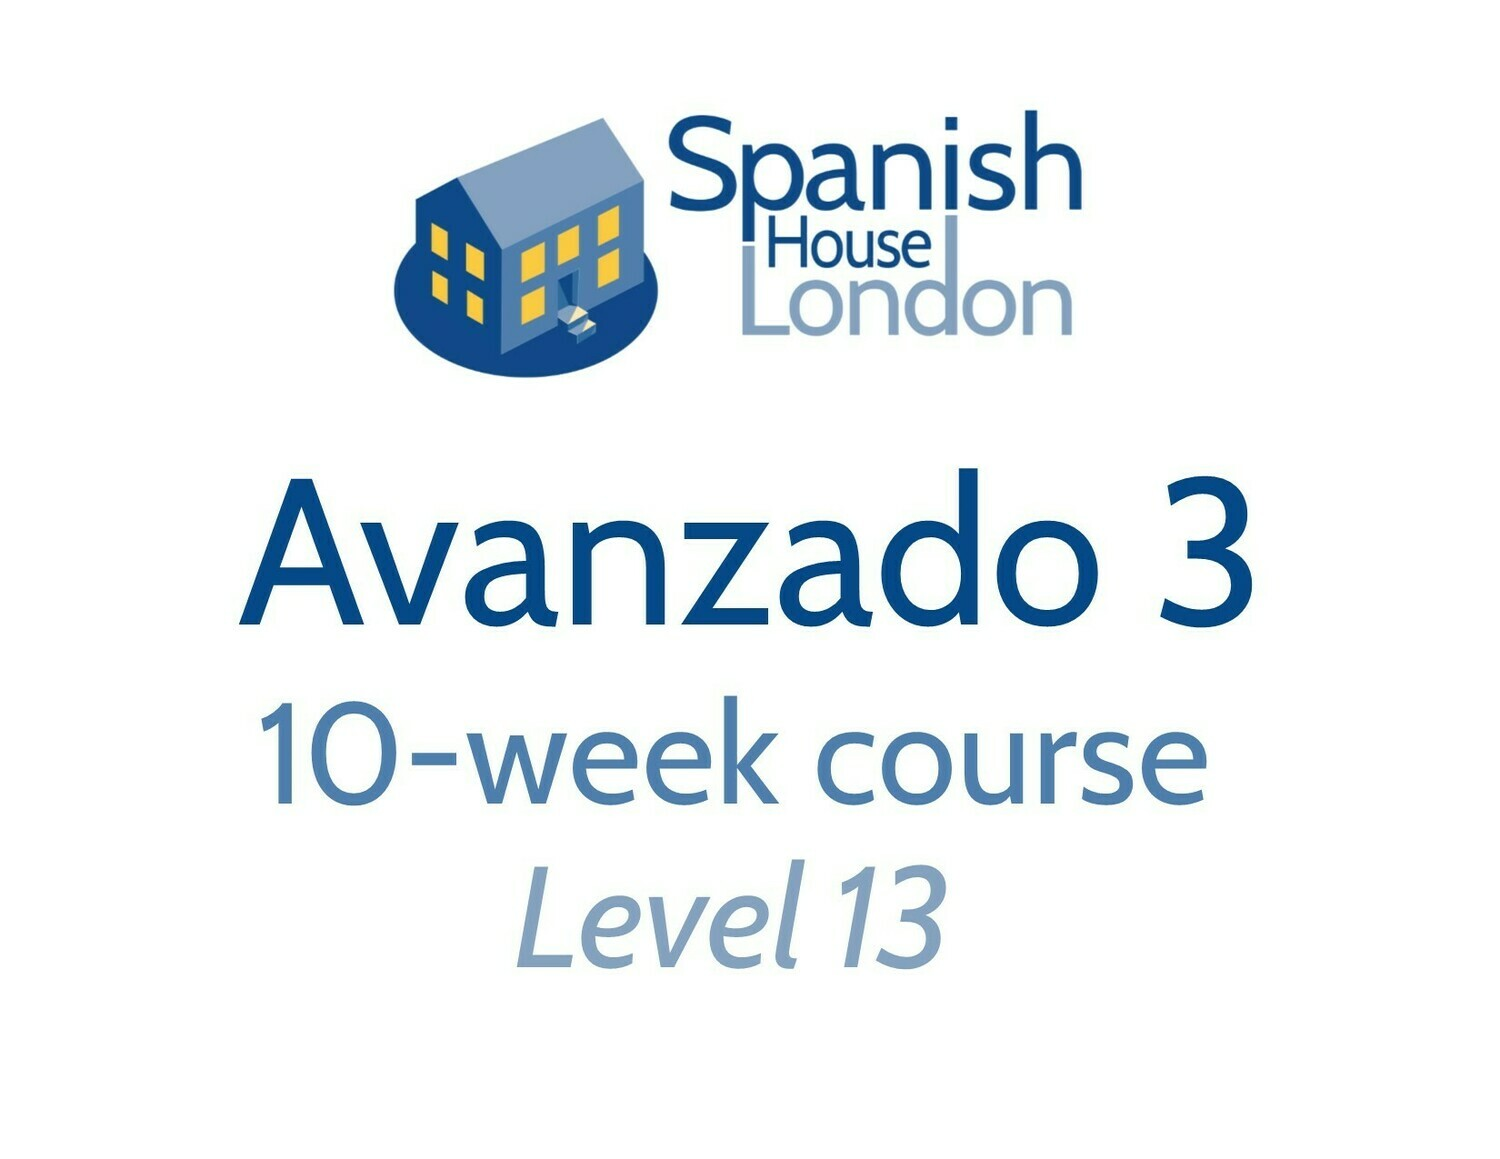 Avanzado 3 Course starting on 22nd March at 6pm